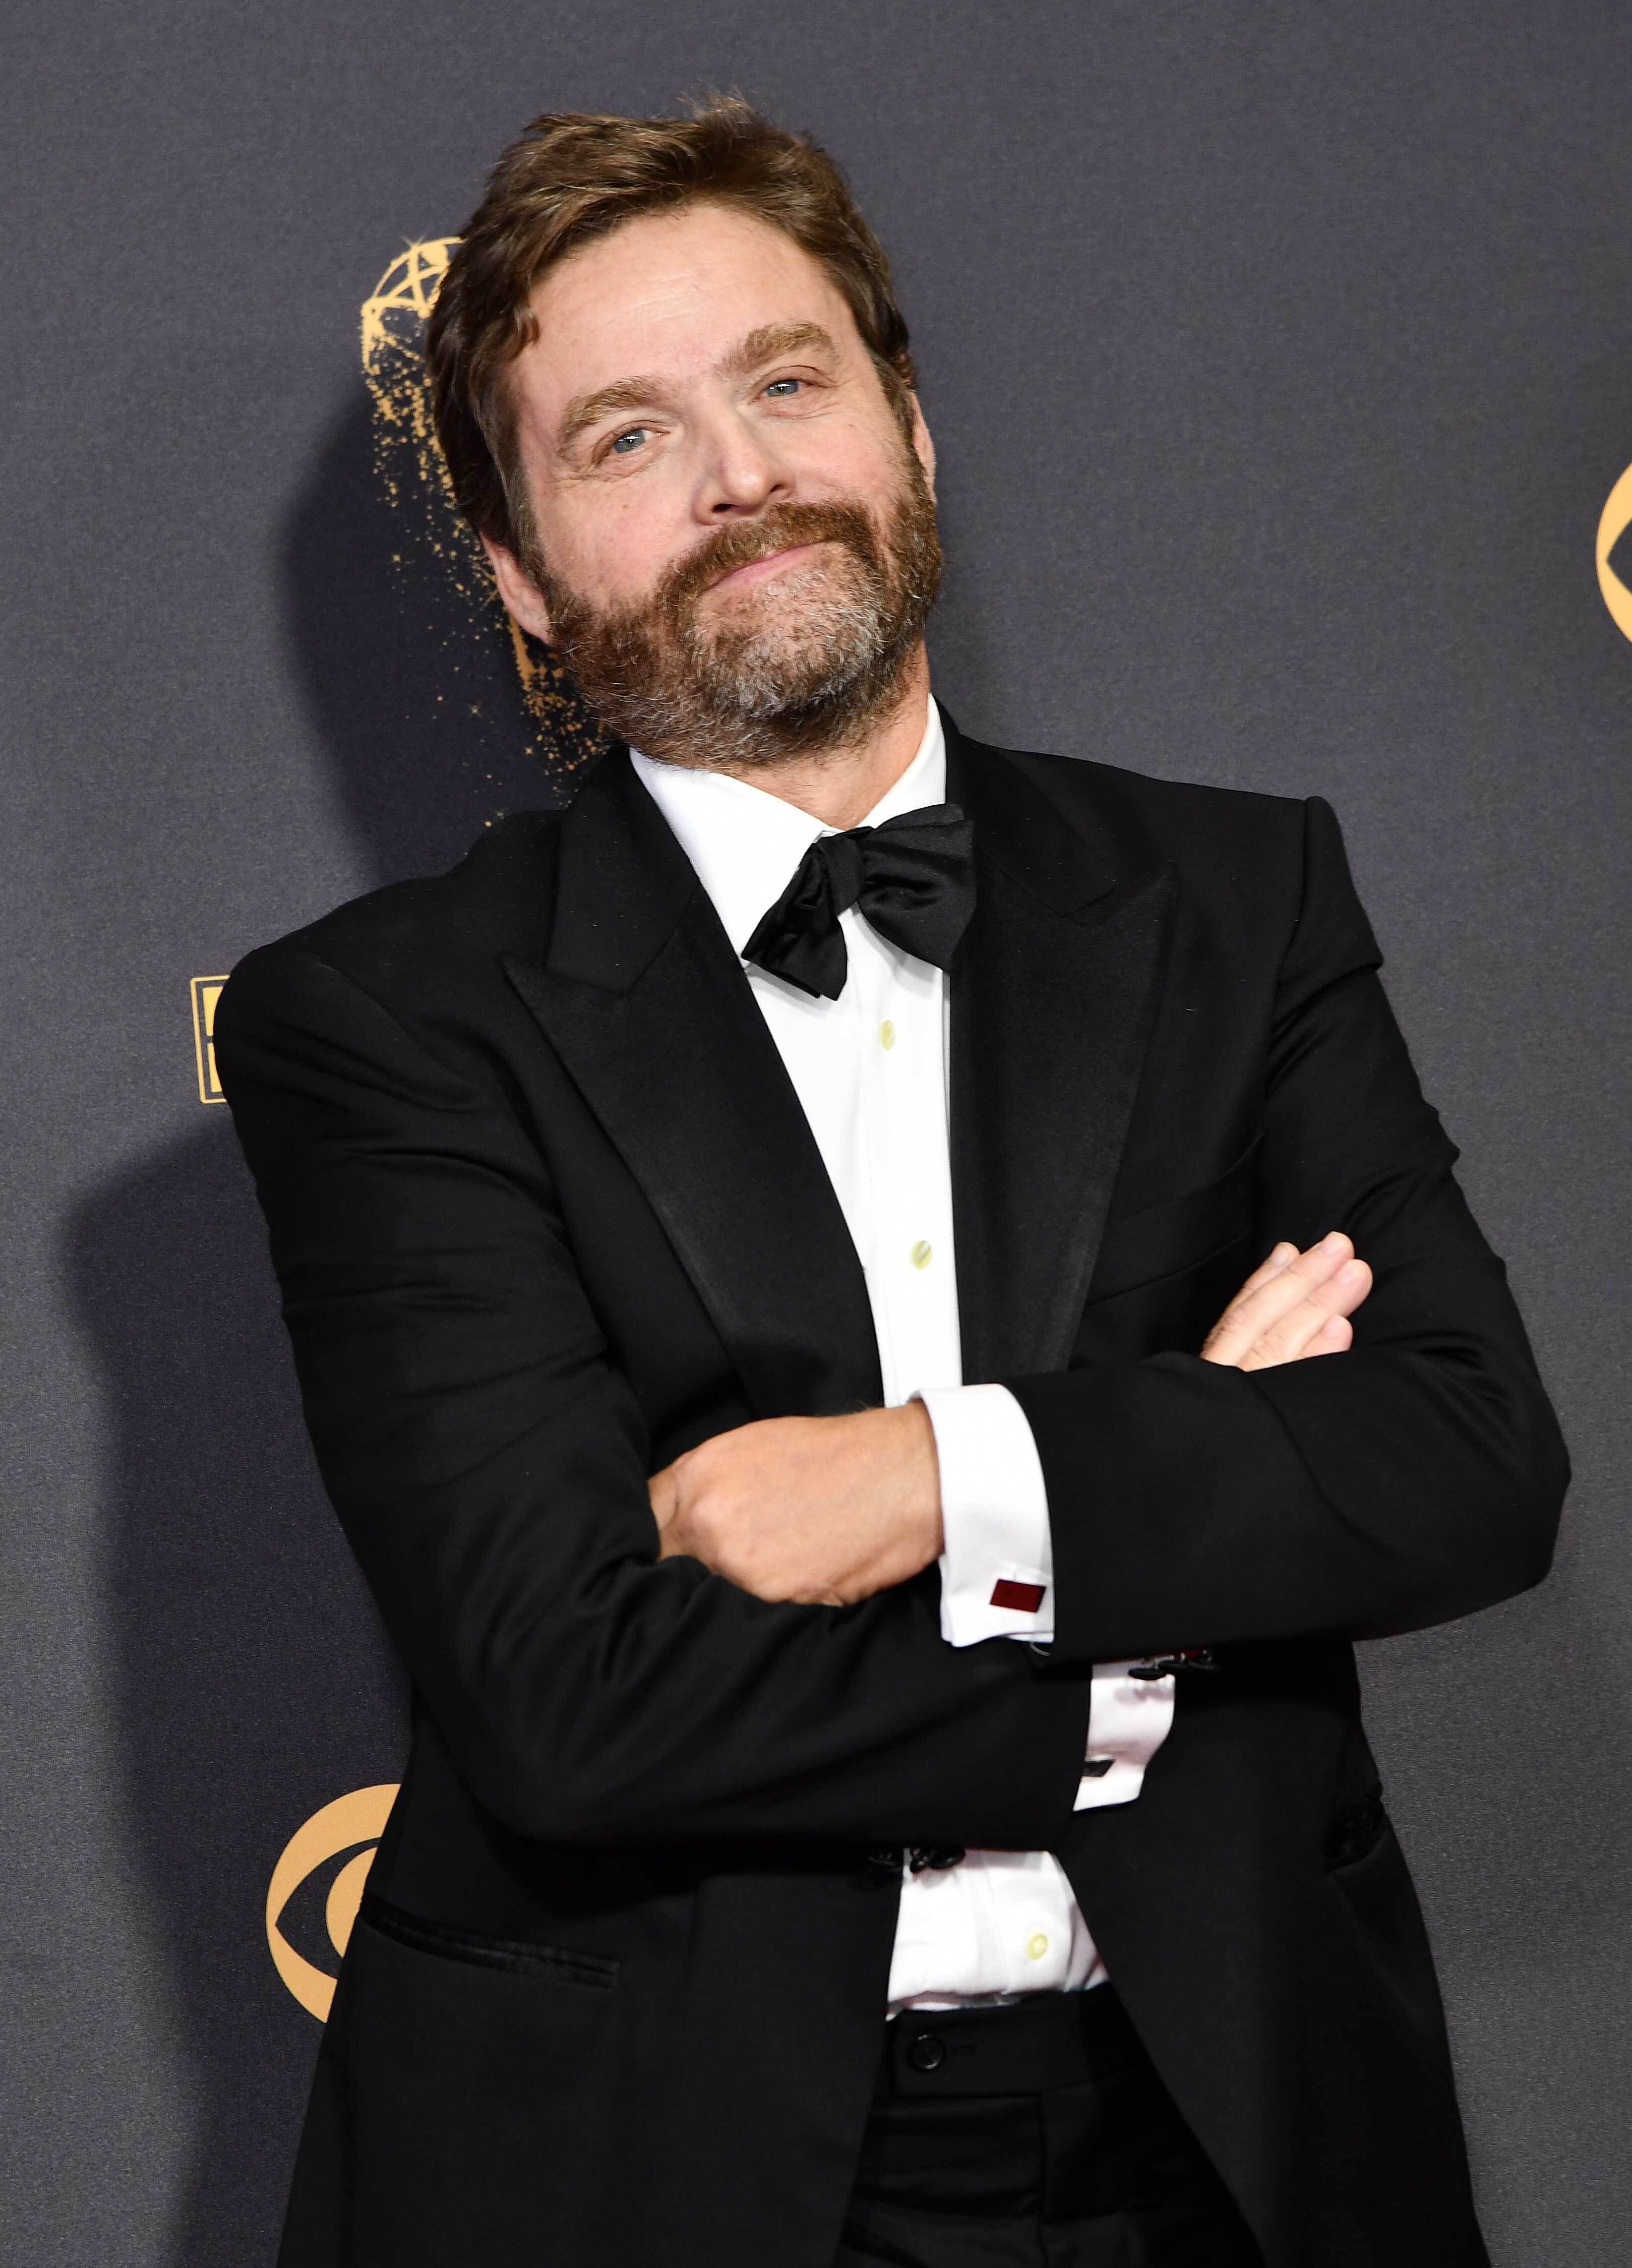 Zach Galifianakis attends the 69th Annual Primetime Emmy Awards at Microsoft Theater in Los Angeles on Sept. 17, 2017.